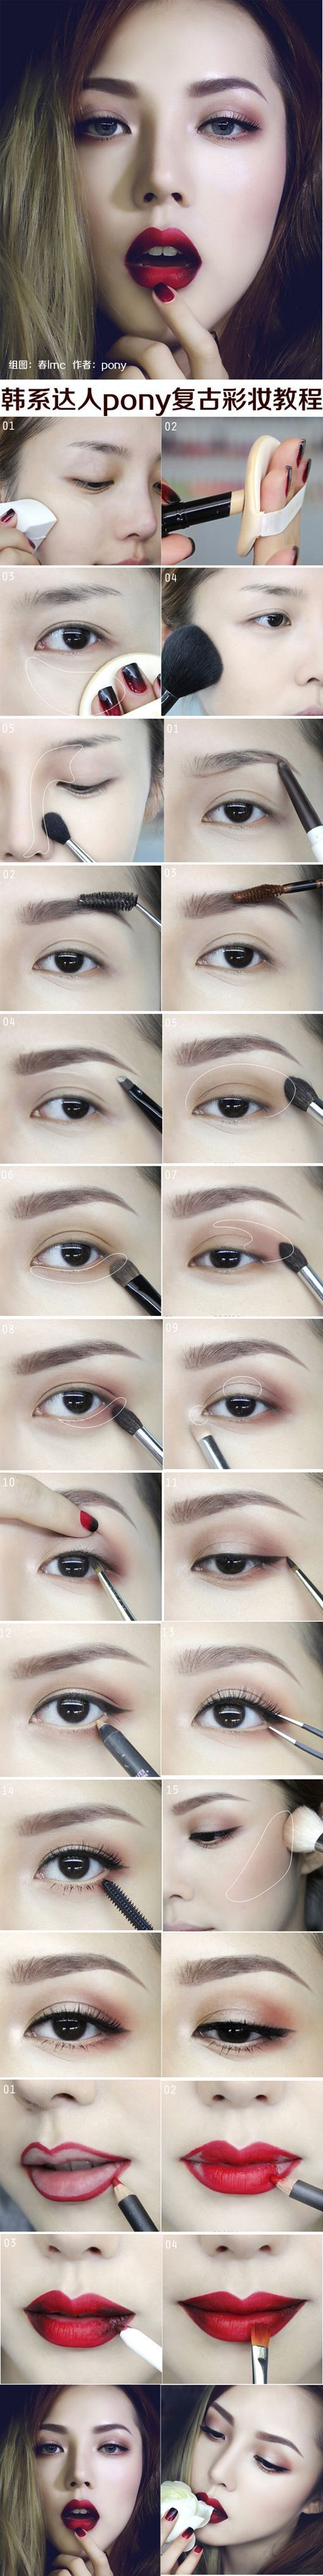 Do It Yourself Fancy Eye Makeup  Every girl needs to rock the perfect eye makeup when they're having a girls night out, going on a date, or want to look amazing for work. So grab your notepad and pen ladies, because we're going to sh